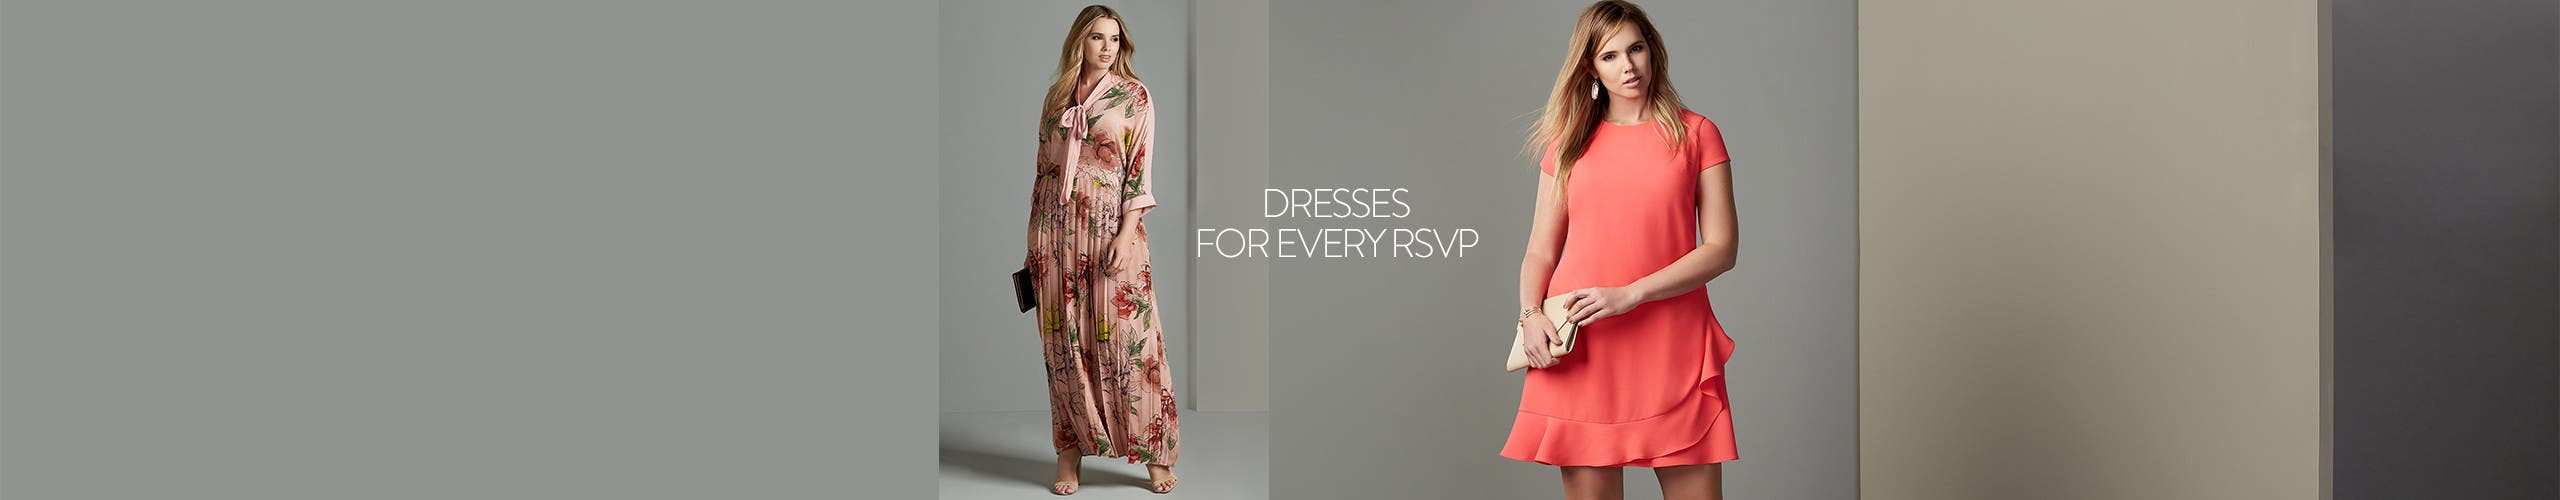 Plus-size dresses for every RSVP.